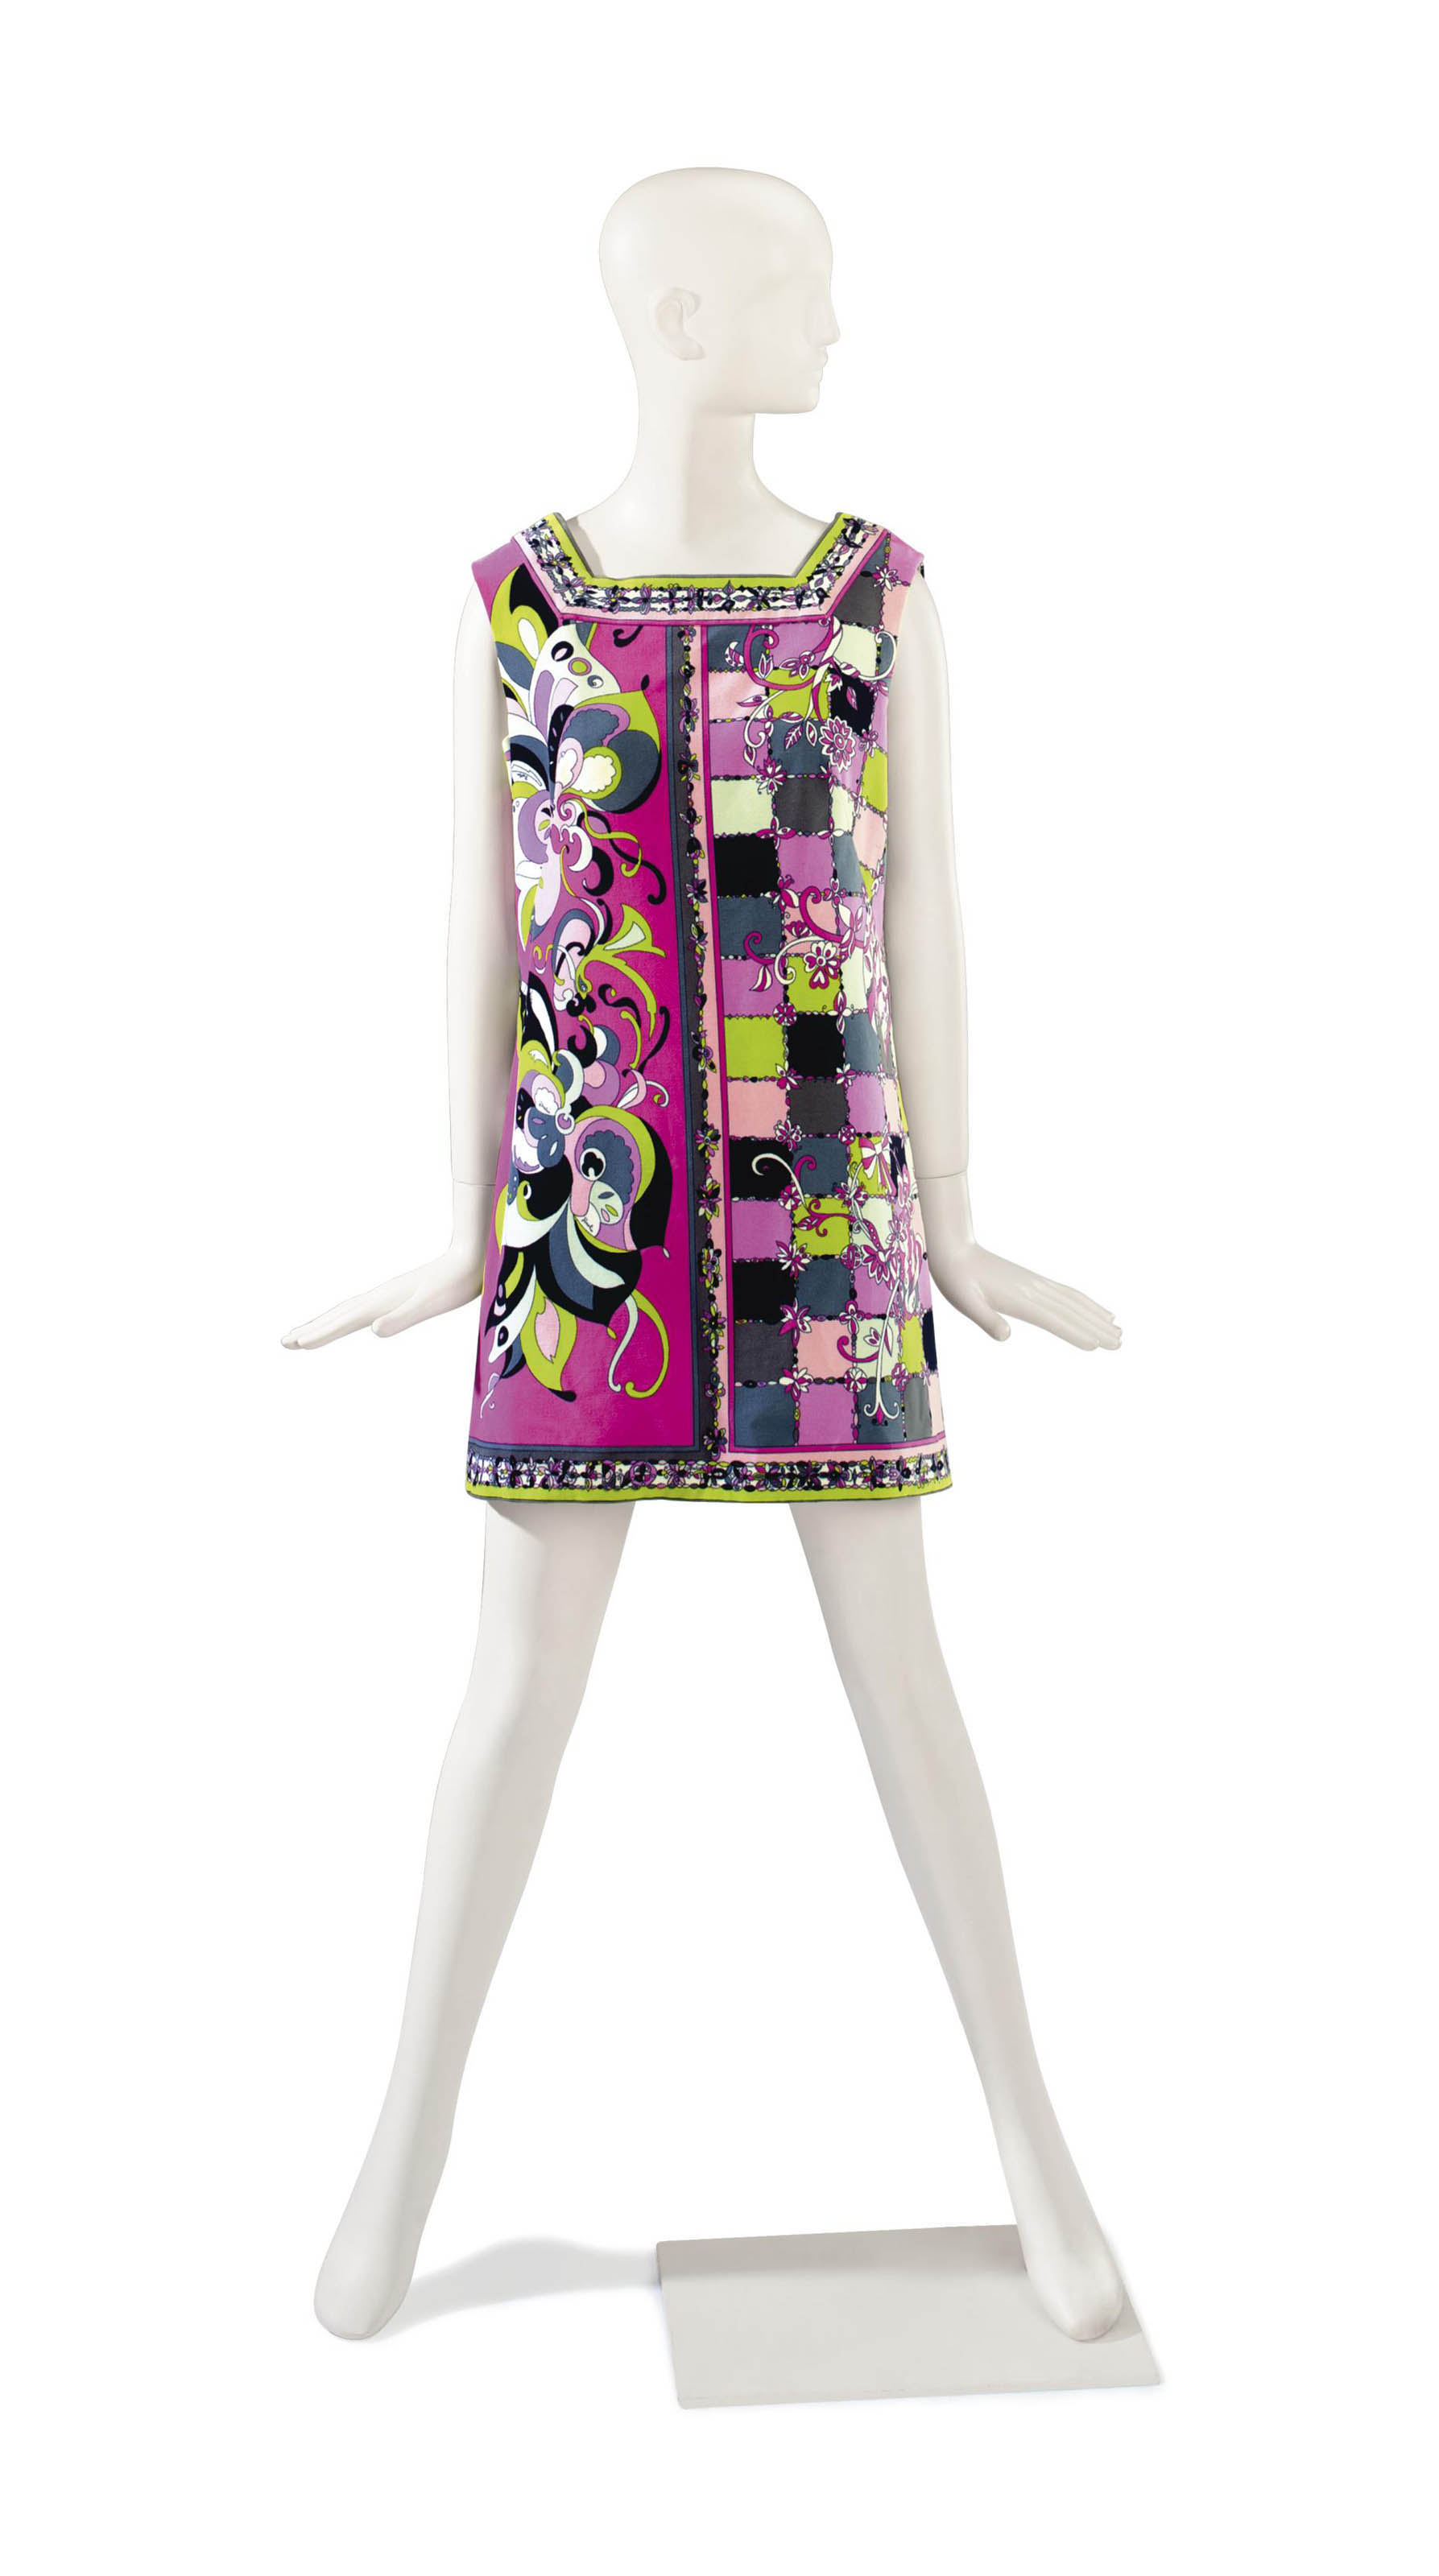 AN EMILIO PUCCI PINK AND MULTI-COLORED PRINT VELVET DRESS WITH MATCHING NYLONS